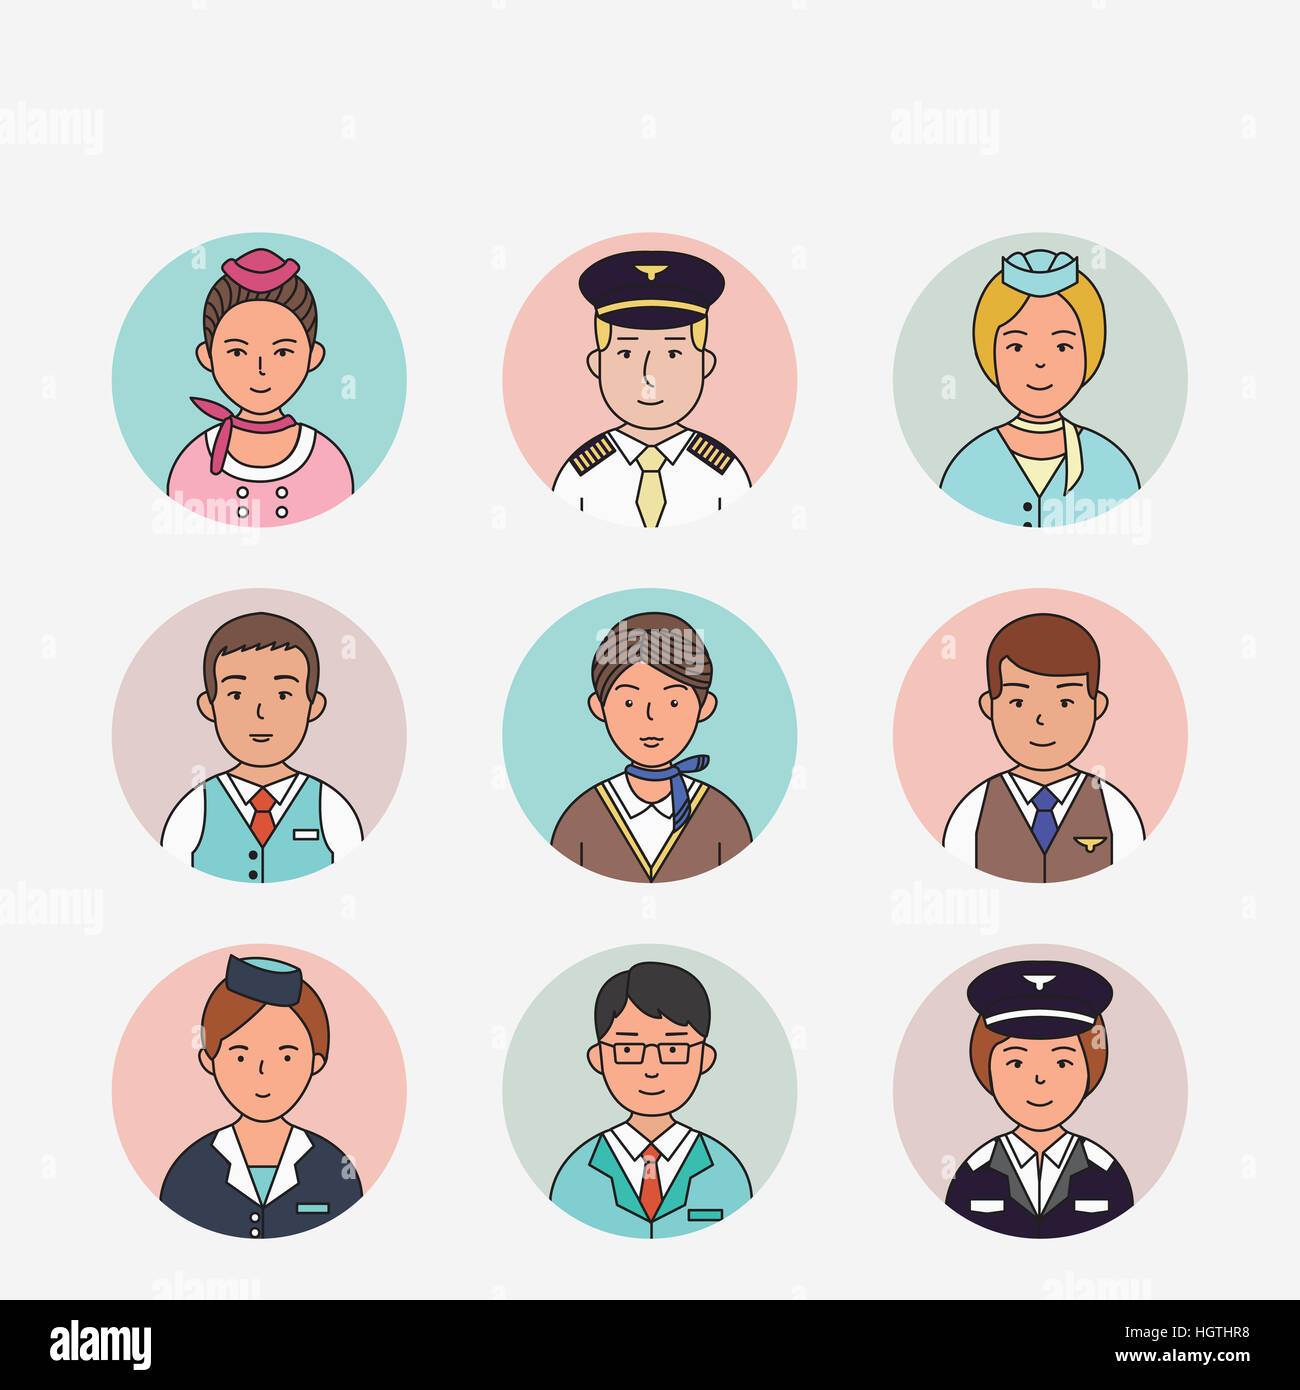 Icons of portraits of pilots and flight attendants - Stock Image